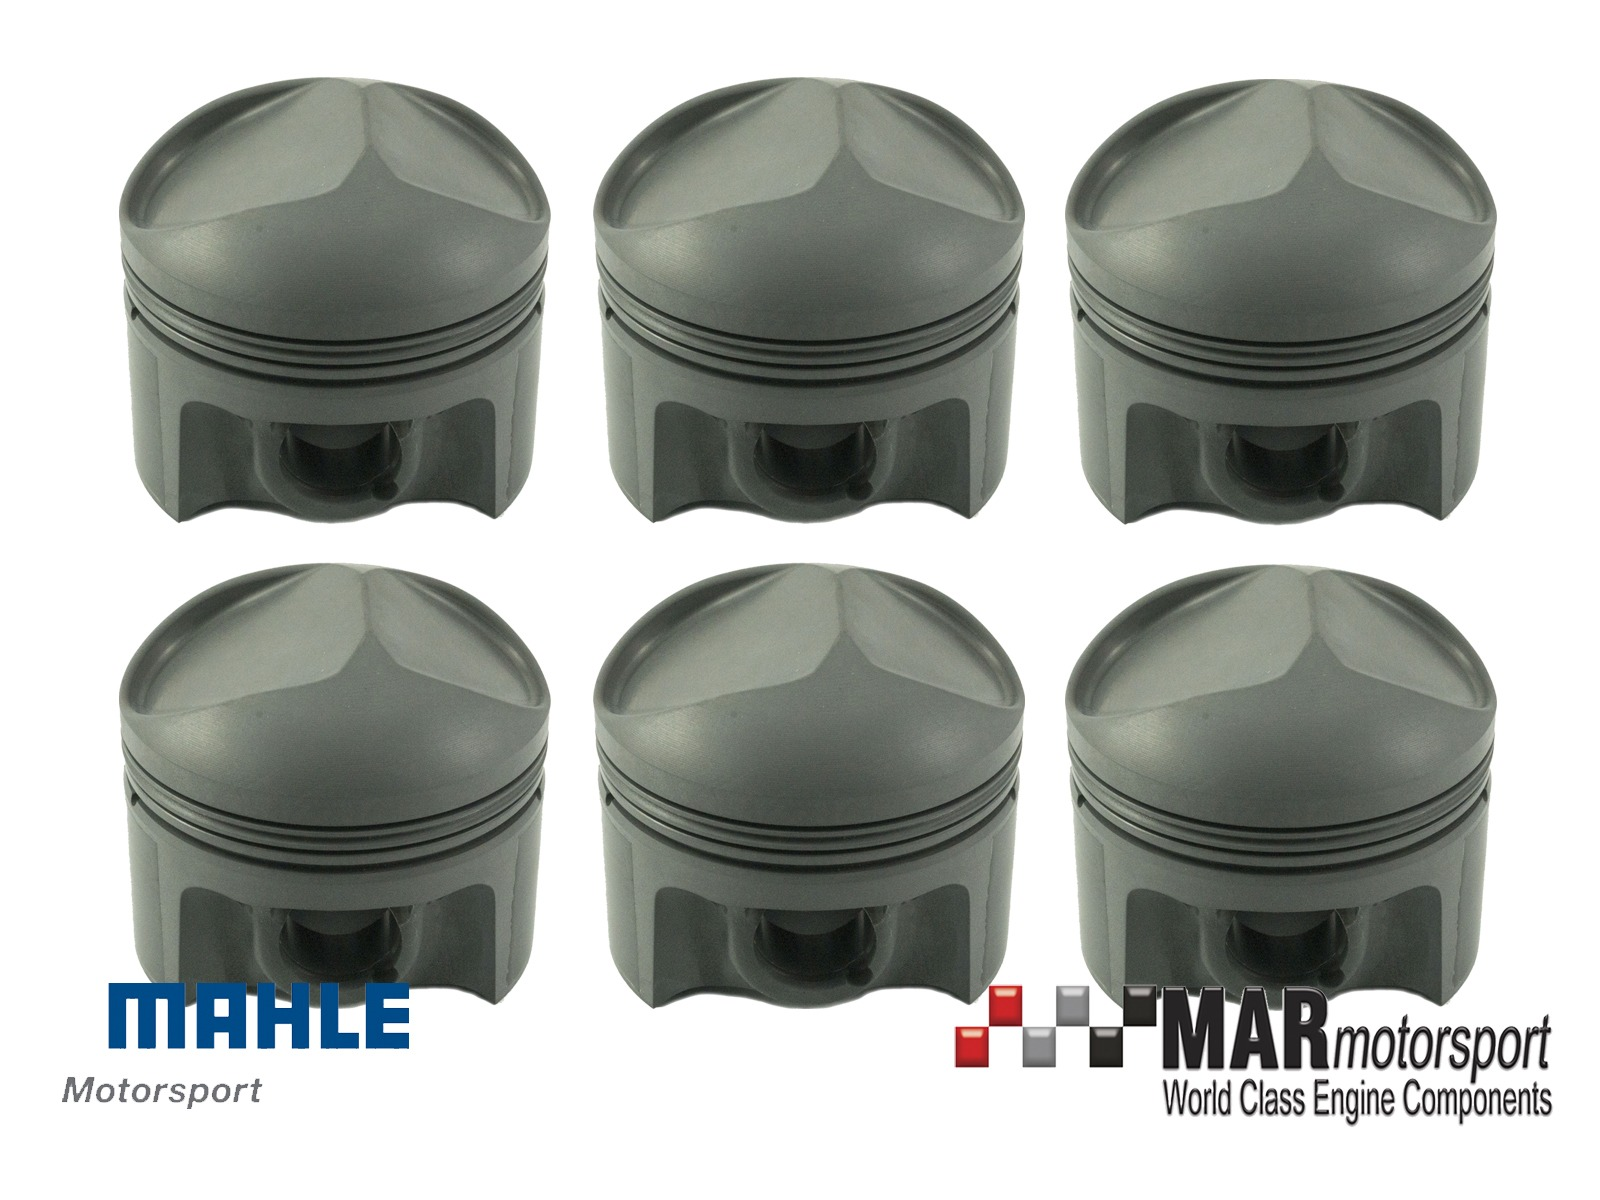 Porsche 911 2.0 MAHLE Pistons & Nikasil Cylinders